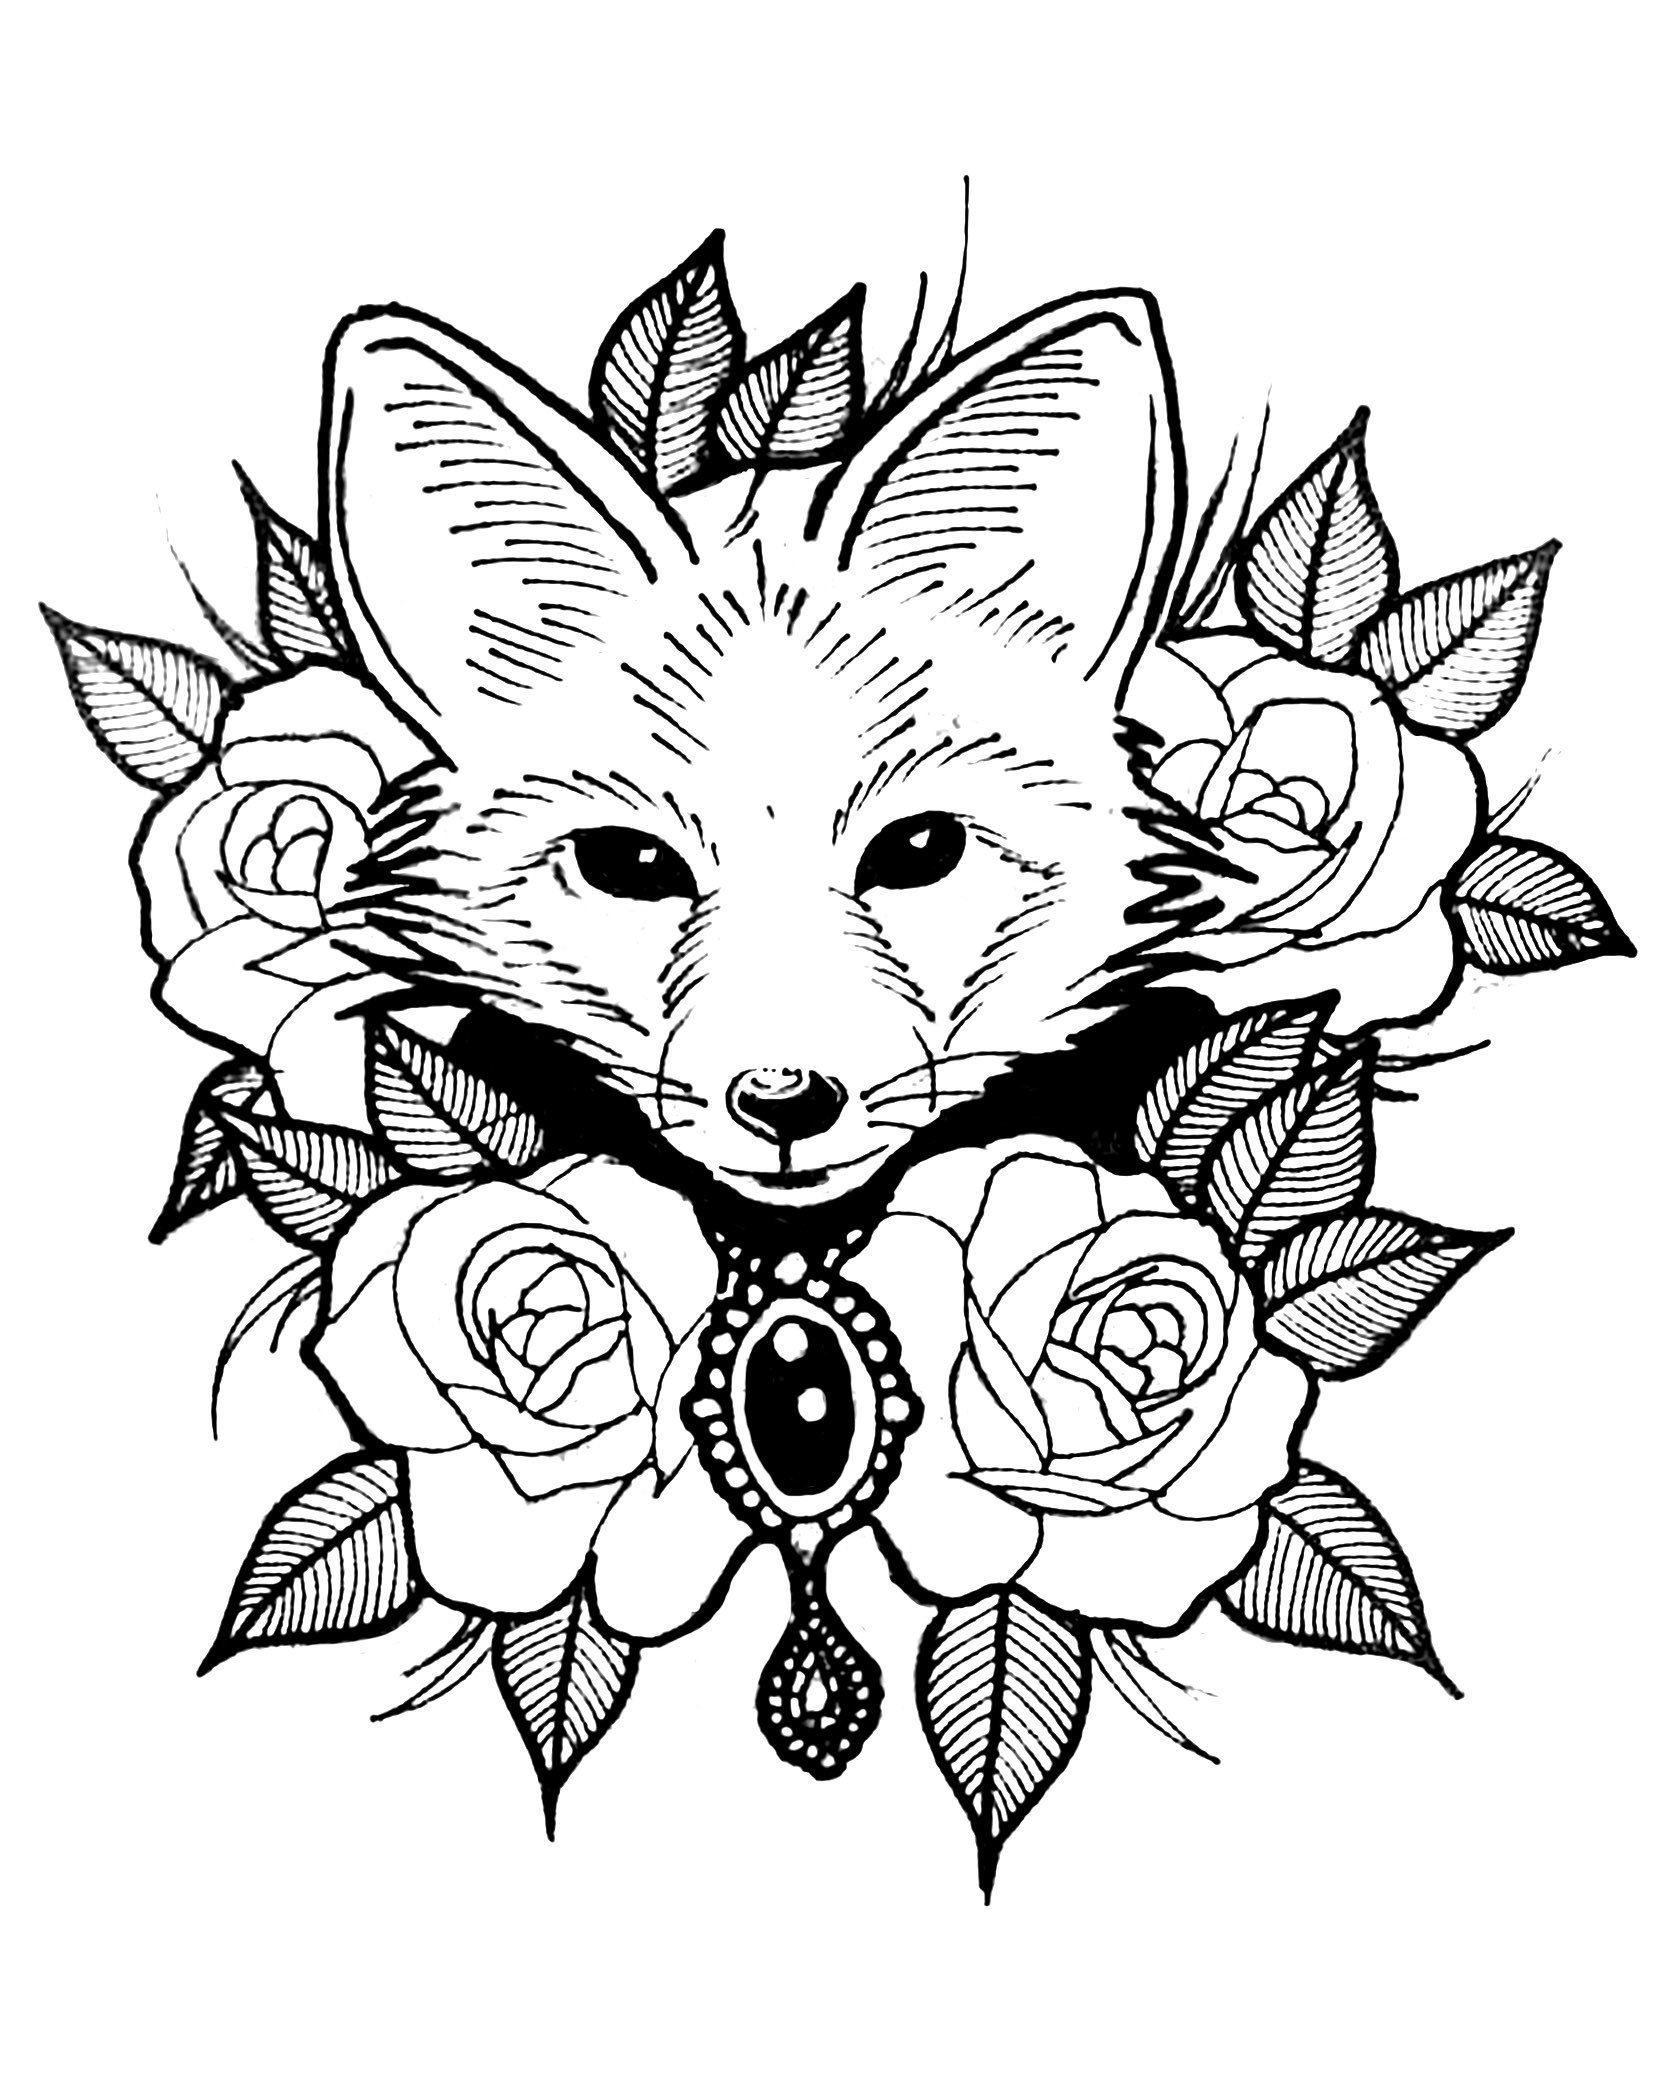 Cute Animal Coloring Pages Printable Coloring Pages Cute Animal Coloring For Adults Fox Coloring Page Zoo Animal Coloring Pages Animal Coloring Books